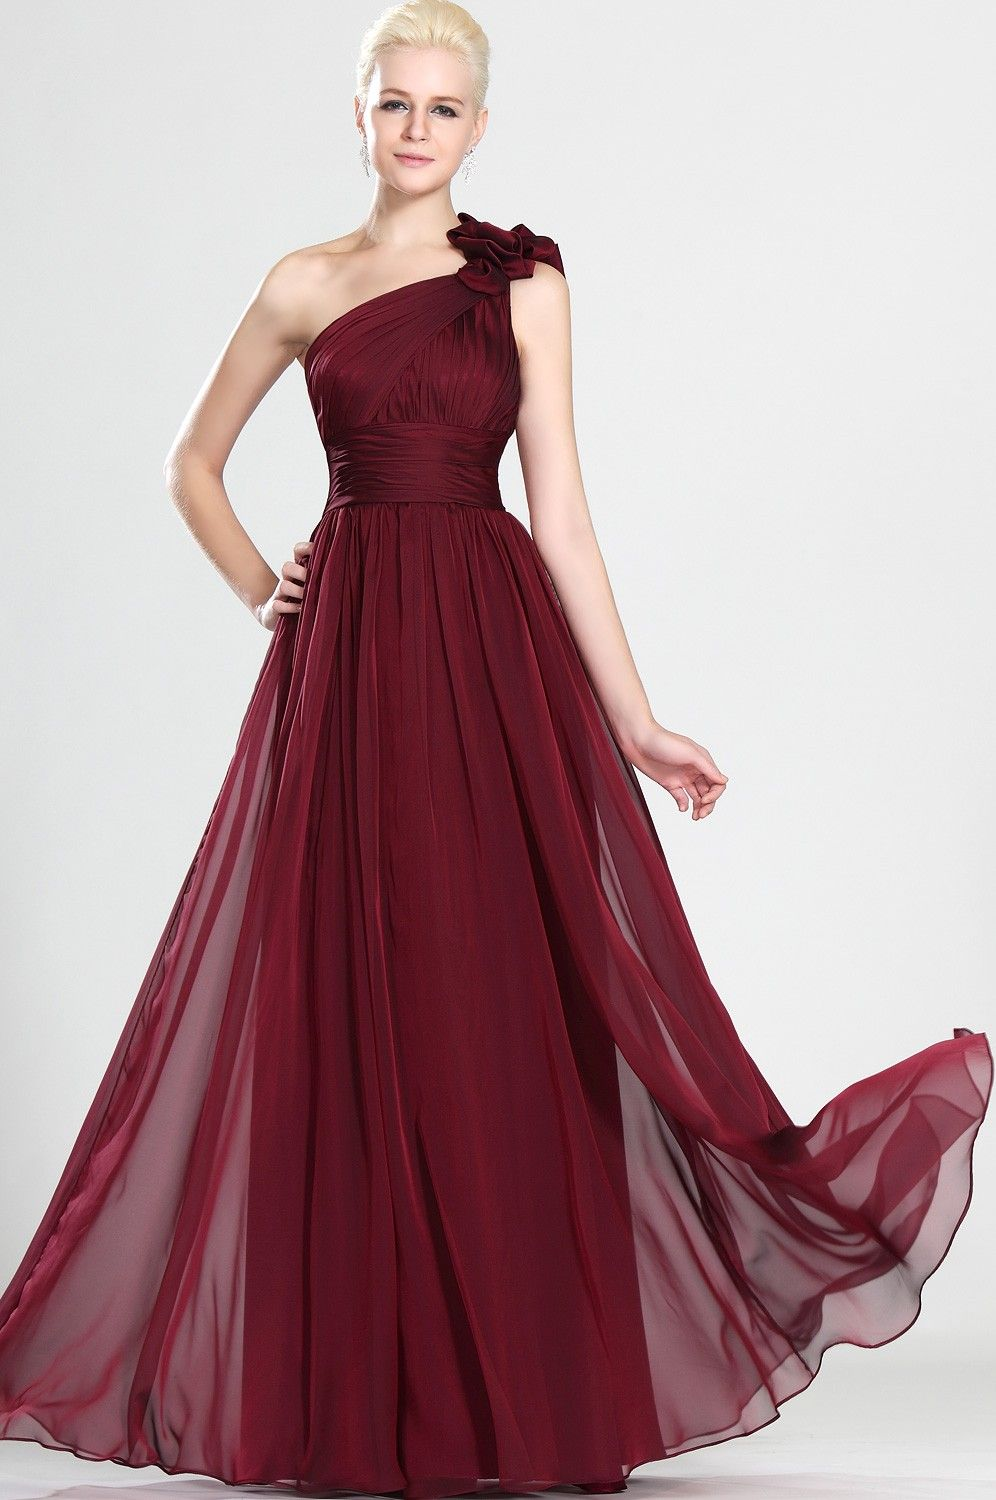 a6b50c8351 Nice A-Line Princess Floor-Length One Shoulder Chiffon Dress at HerDress  Online